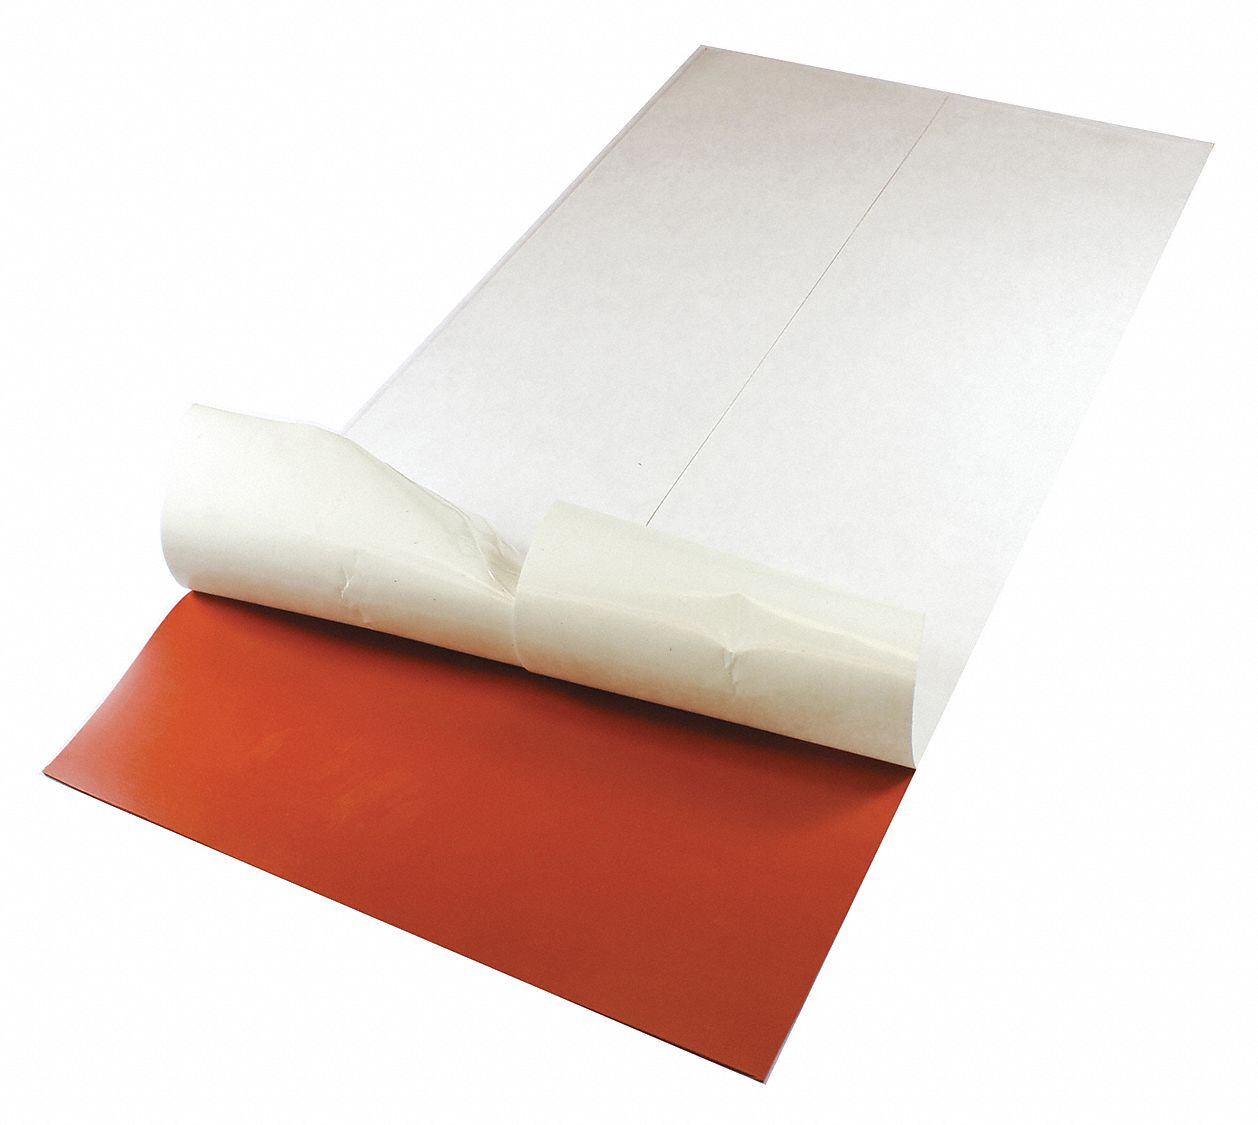 """Silicone Rubber Sheet High Temp 1//8 Thick x 12/"""" wide x 12/"""" long FREE SHIPPING"""